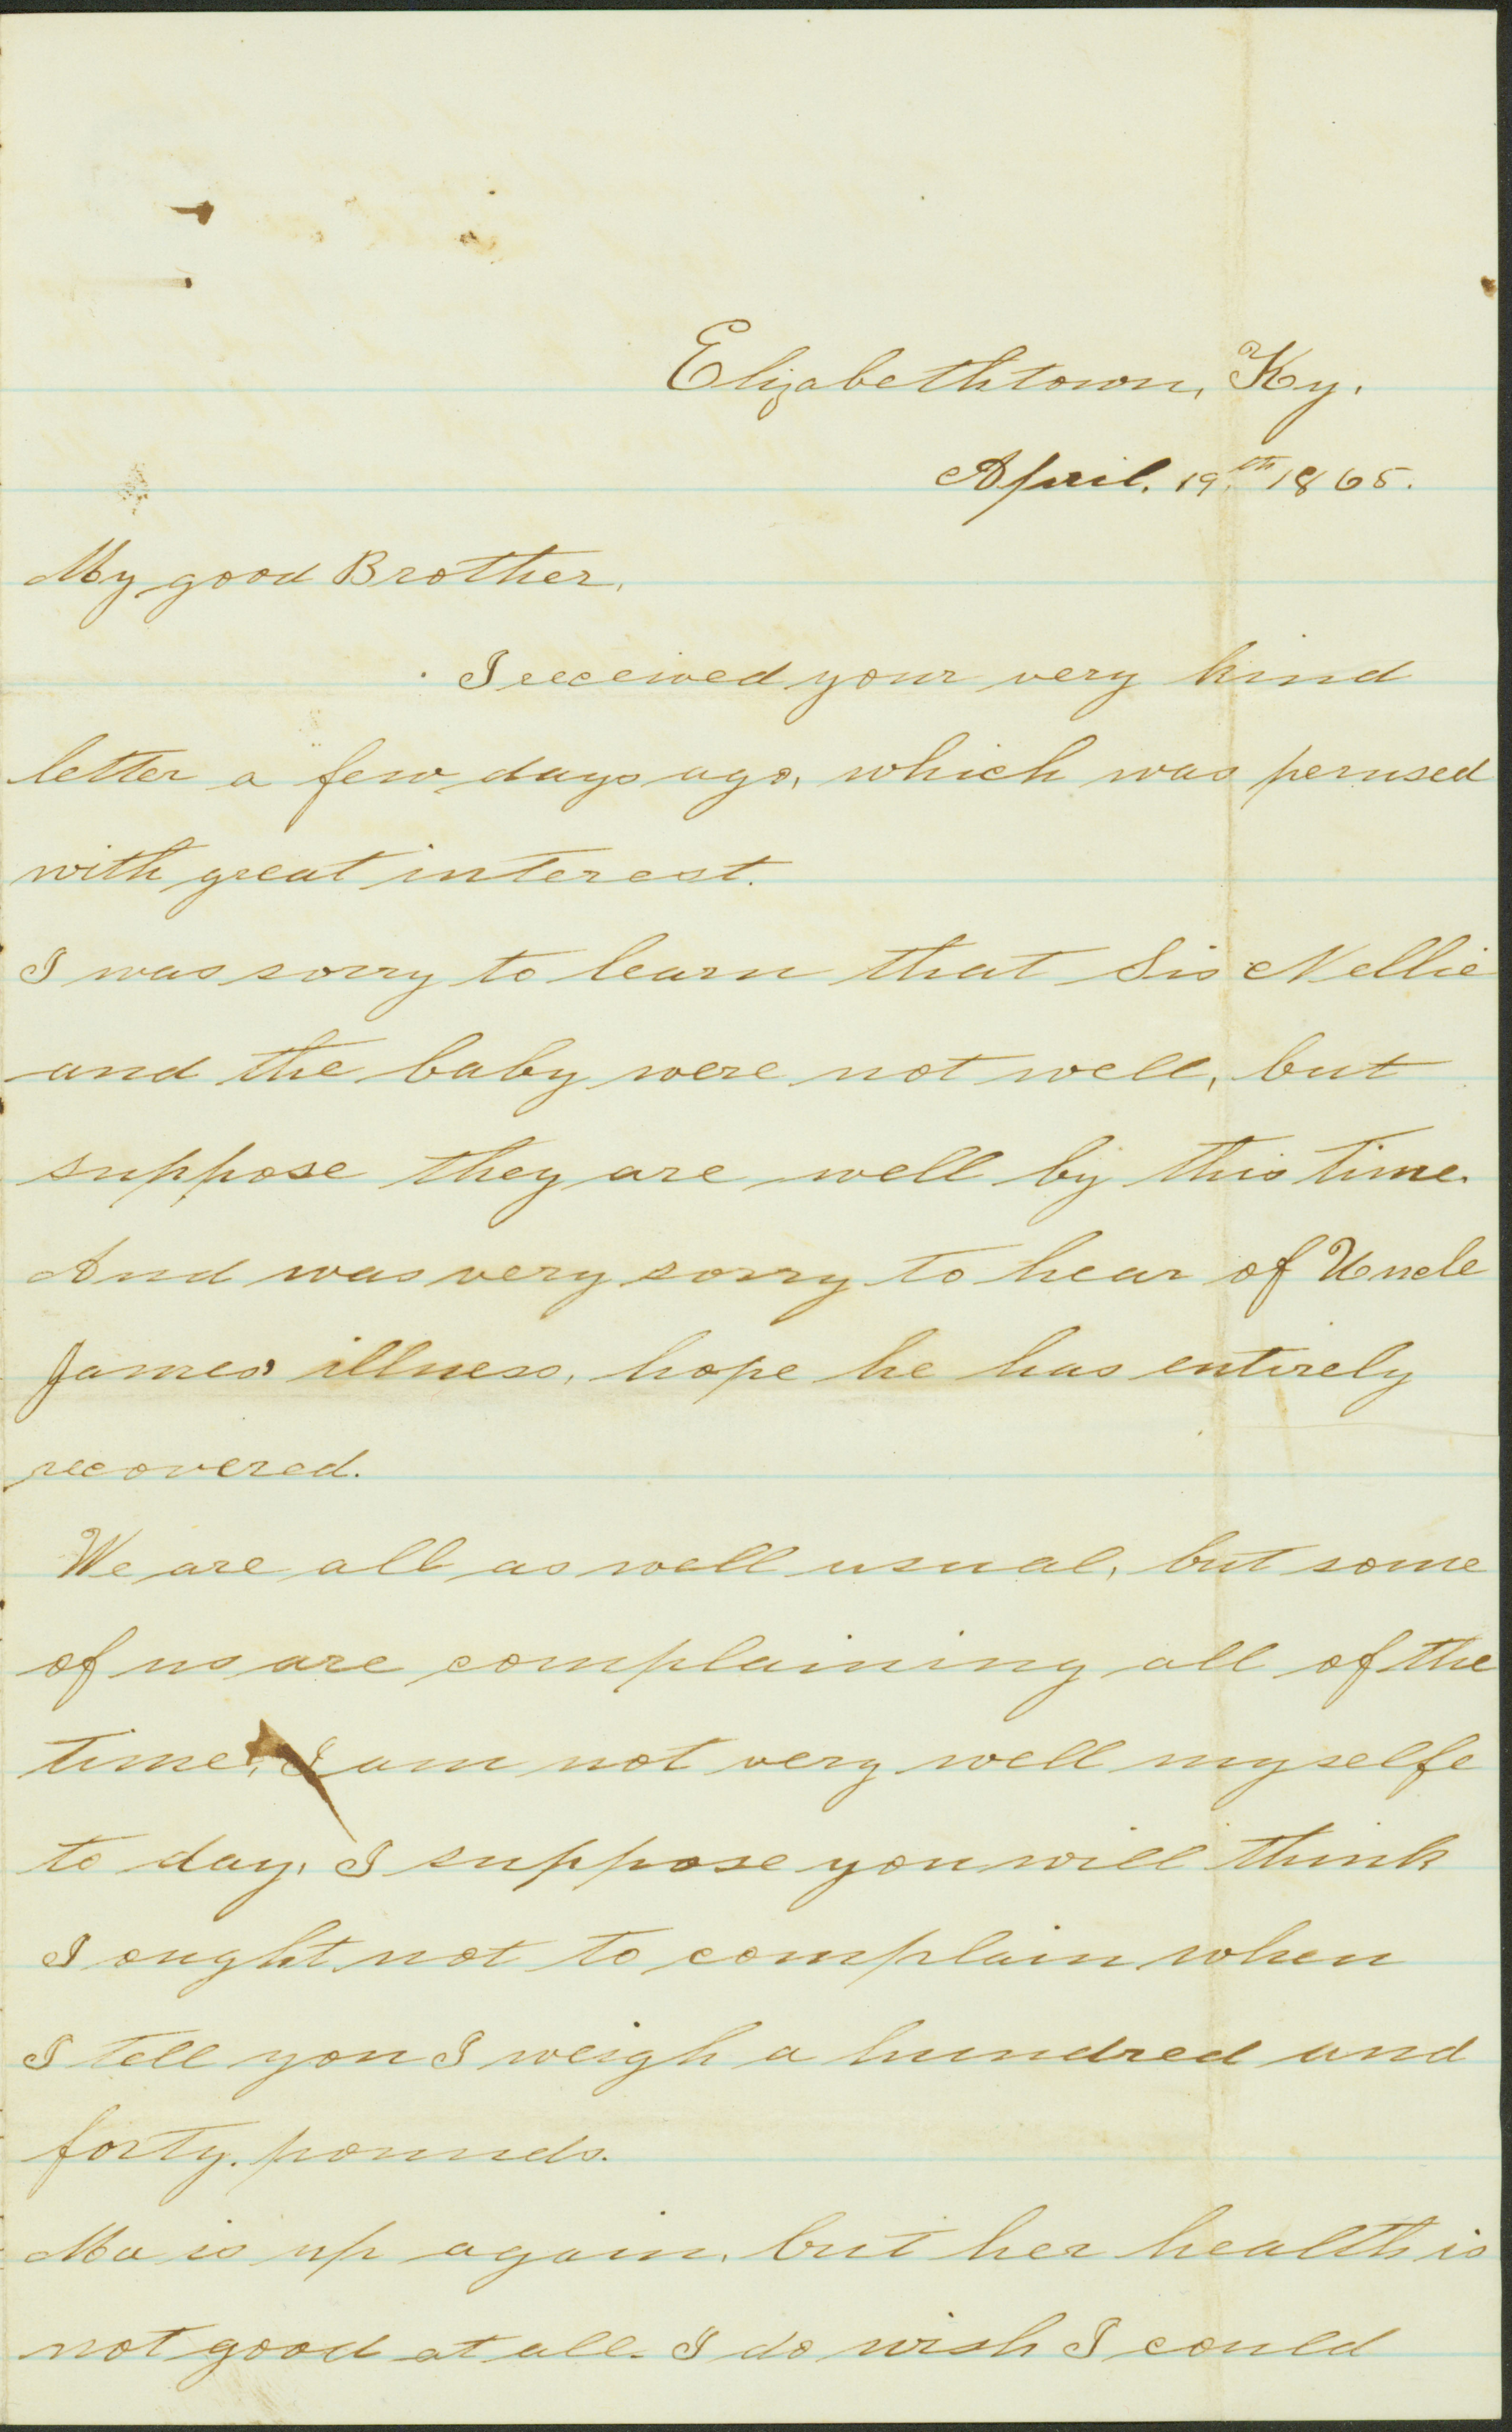 Letter of Sallie Thomas, Elizabethtown, Ky., to Brother [George W. Parker], April 19, 1865